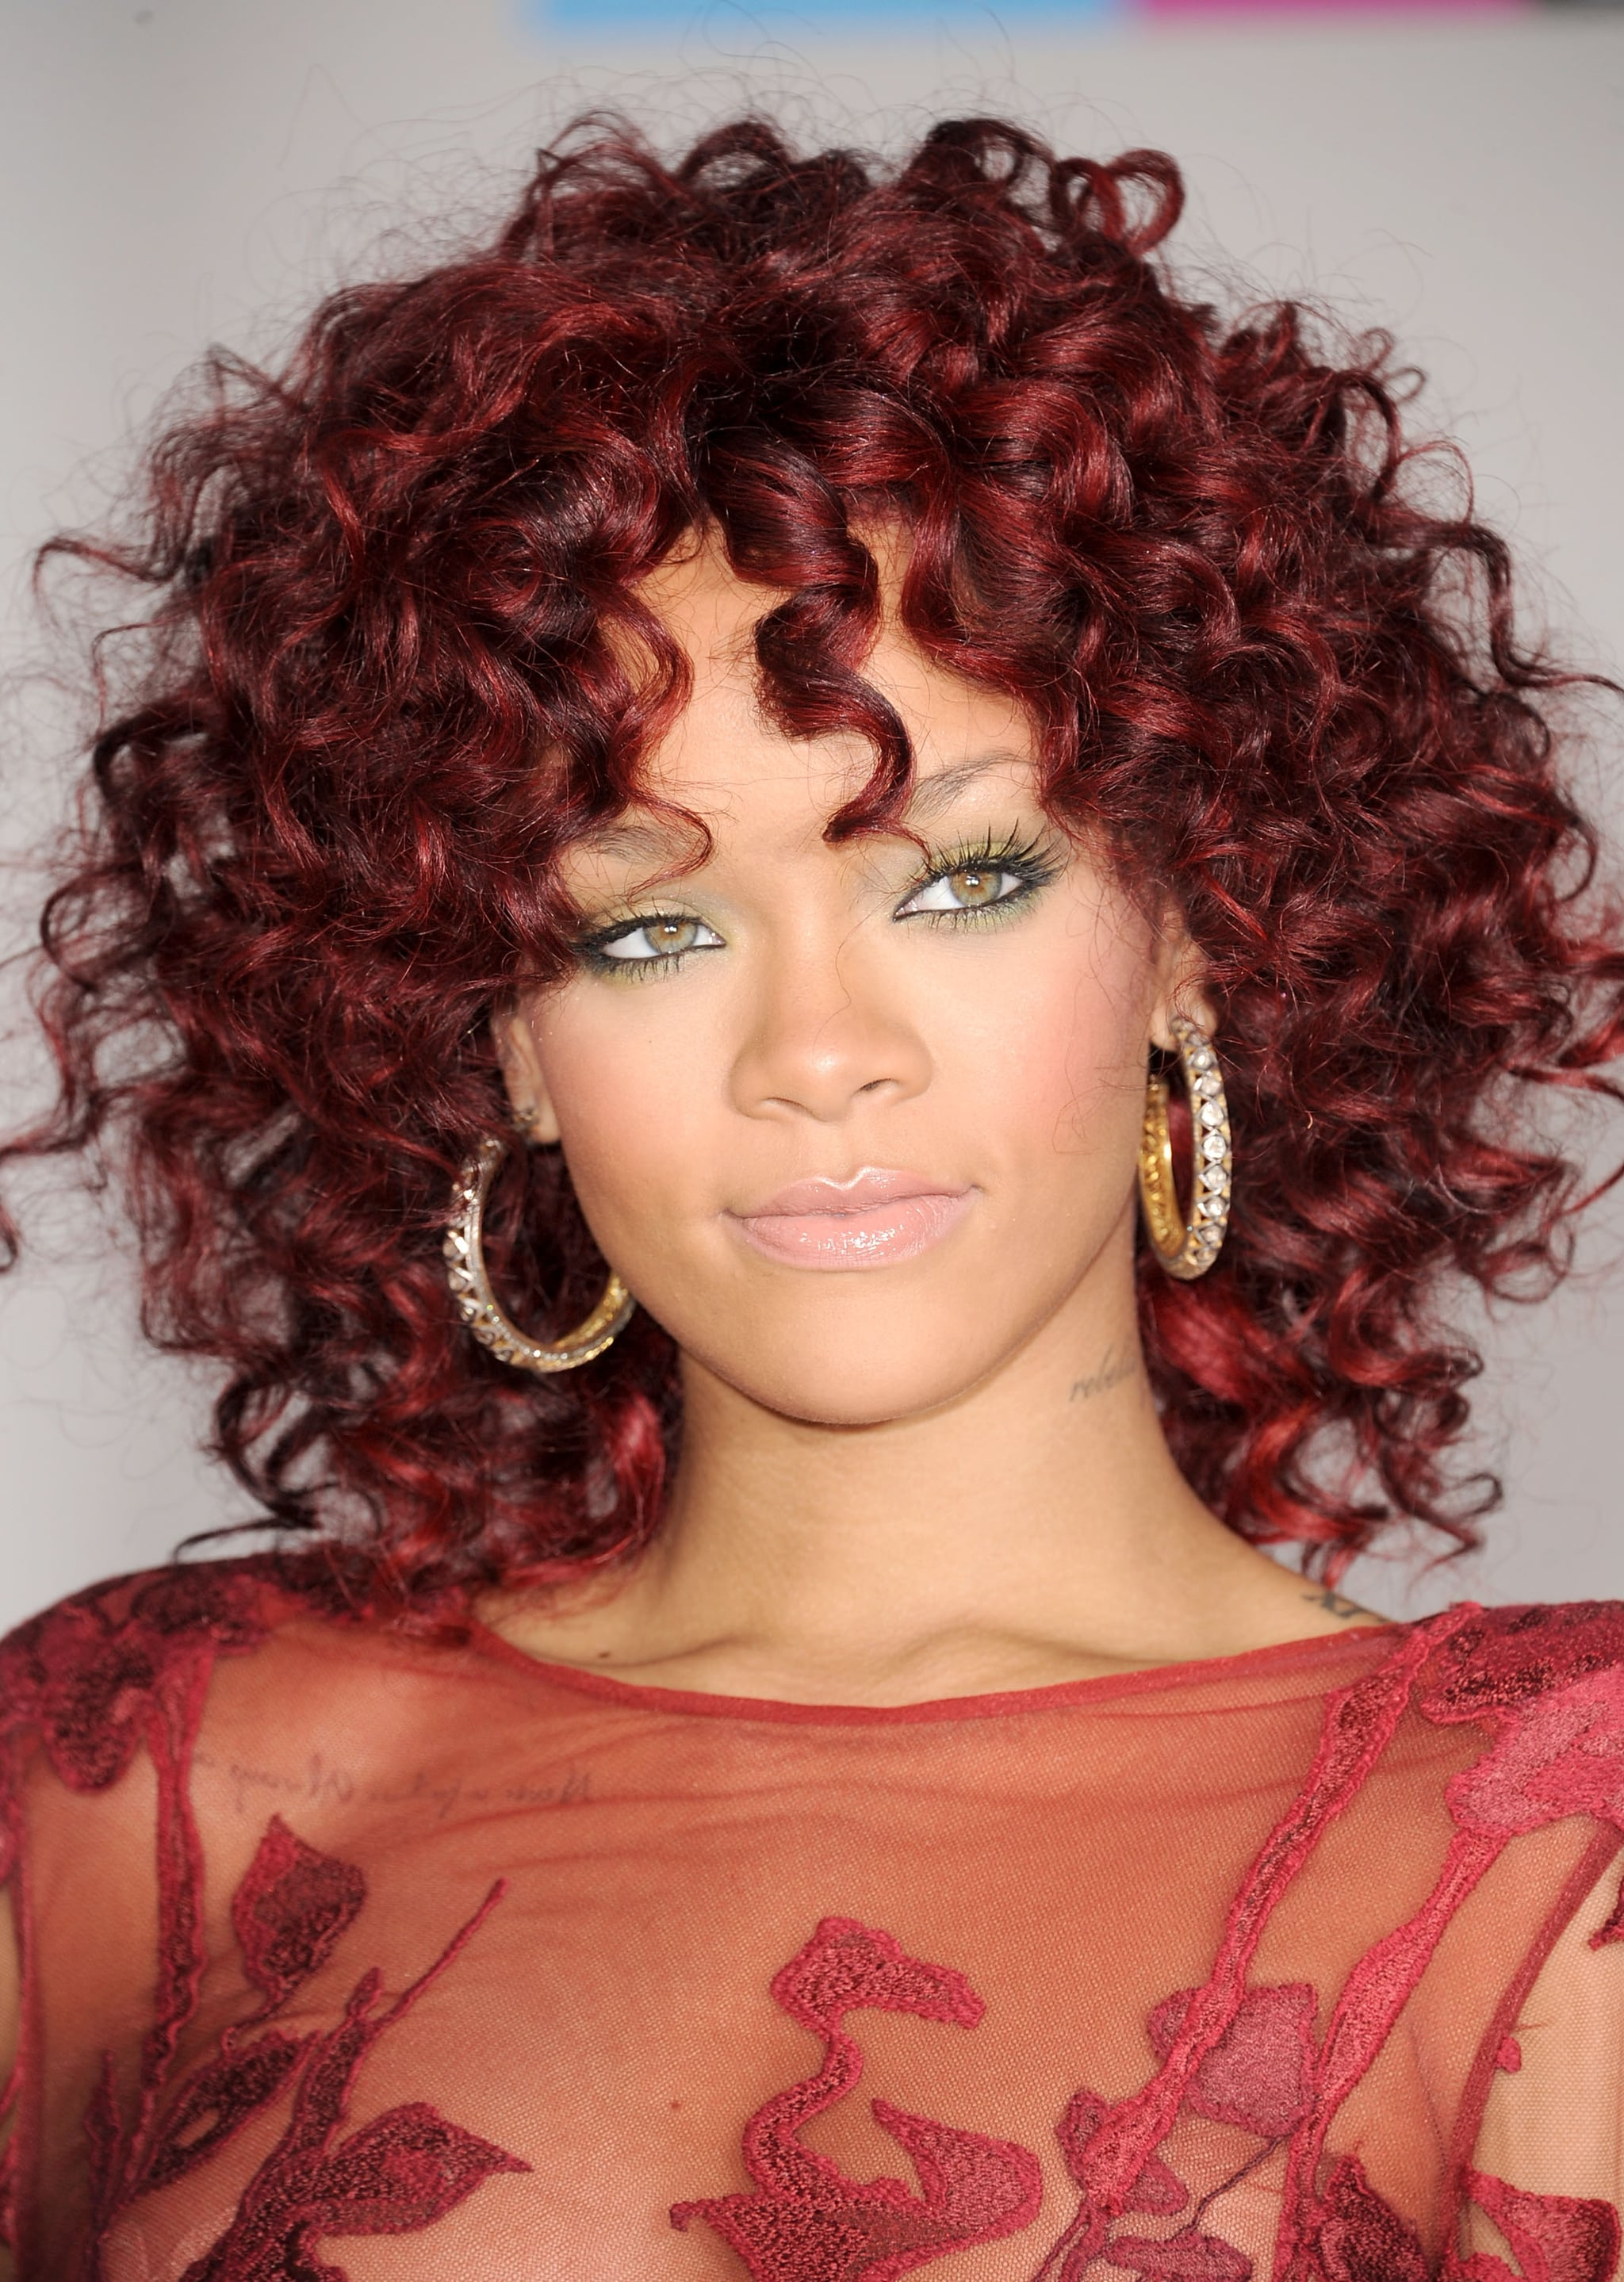 rihanna hair style 2010 the best looks rihanna has rocked so far 8903